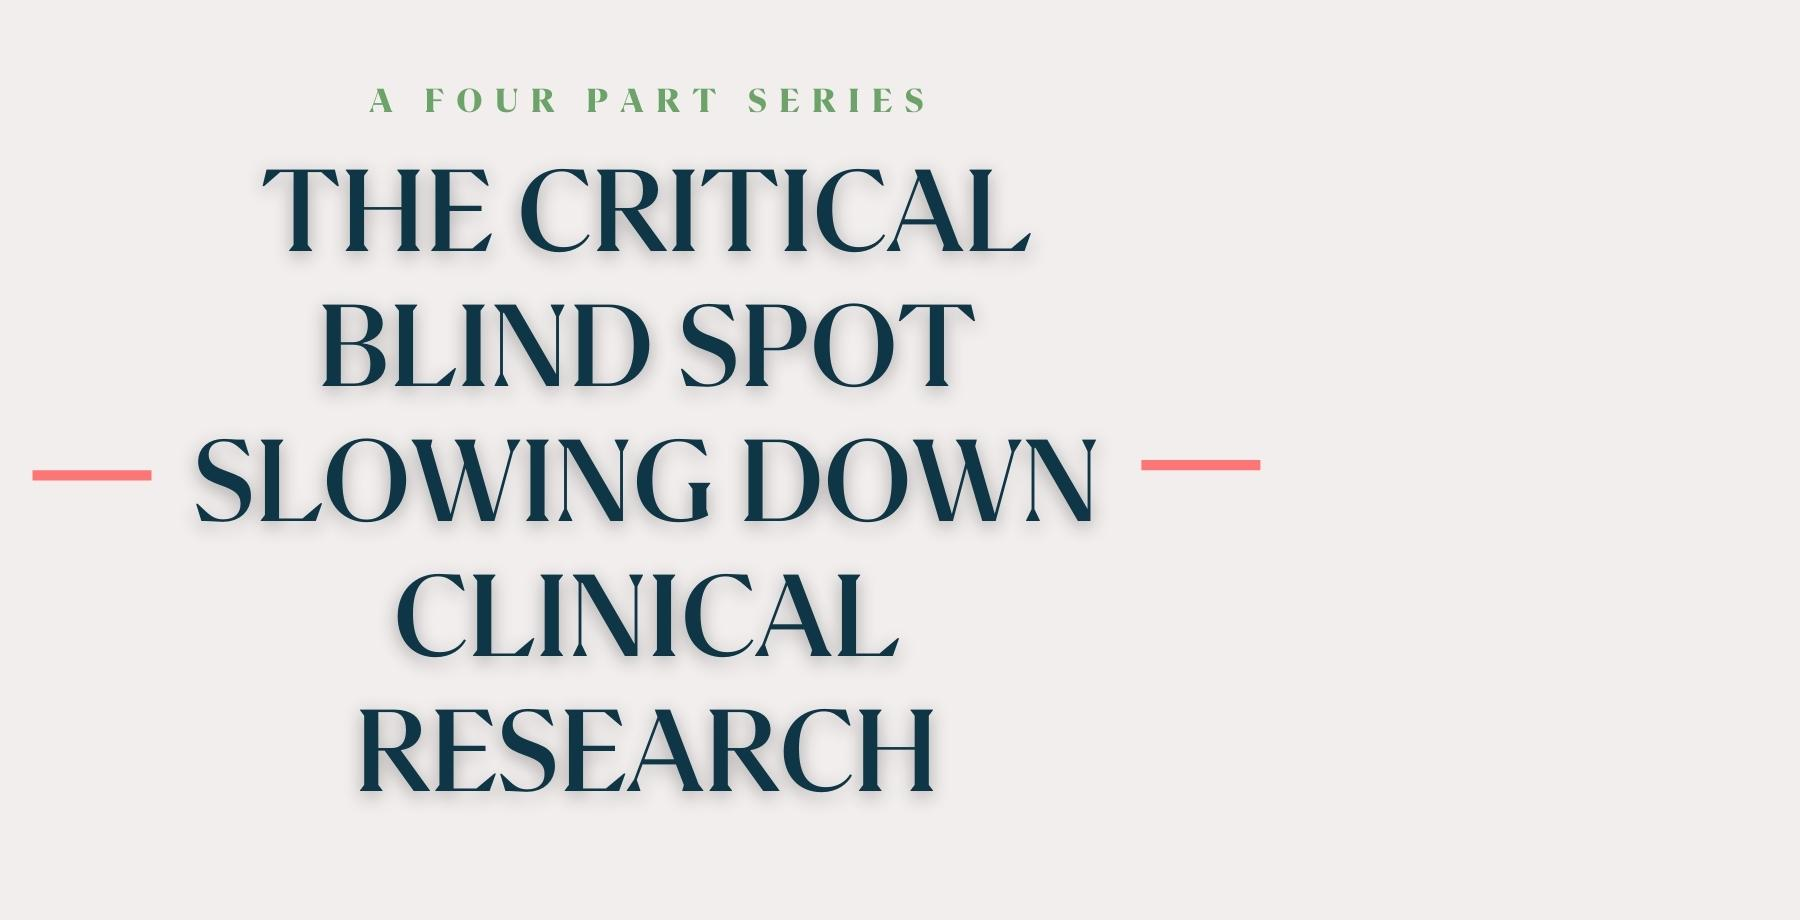 The Critical Blind Spot Slowing Down Clinical Research